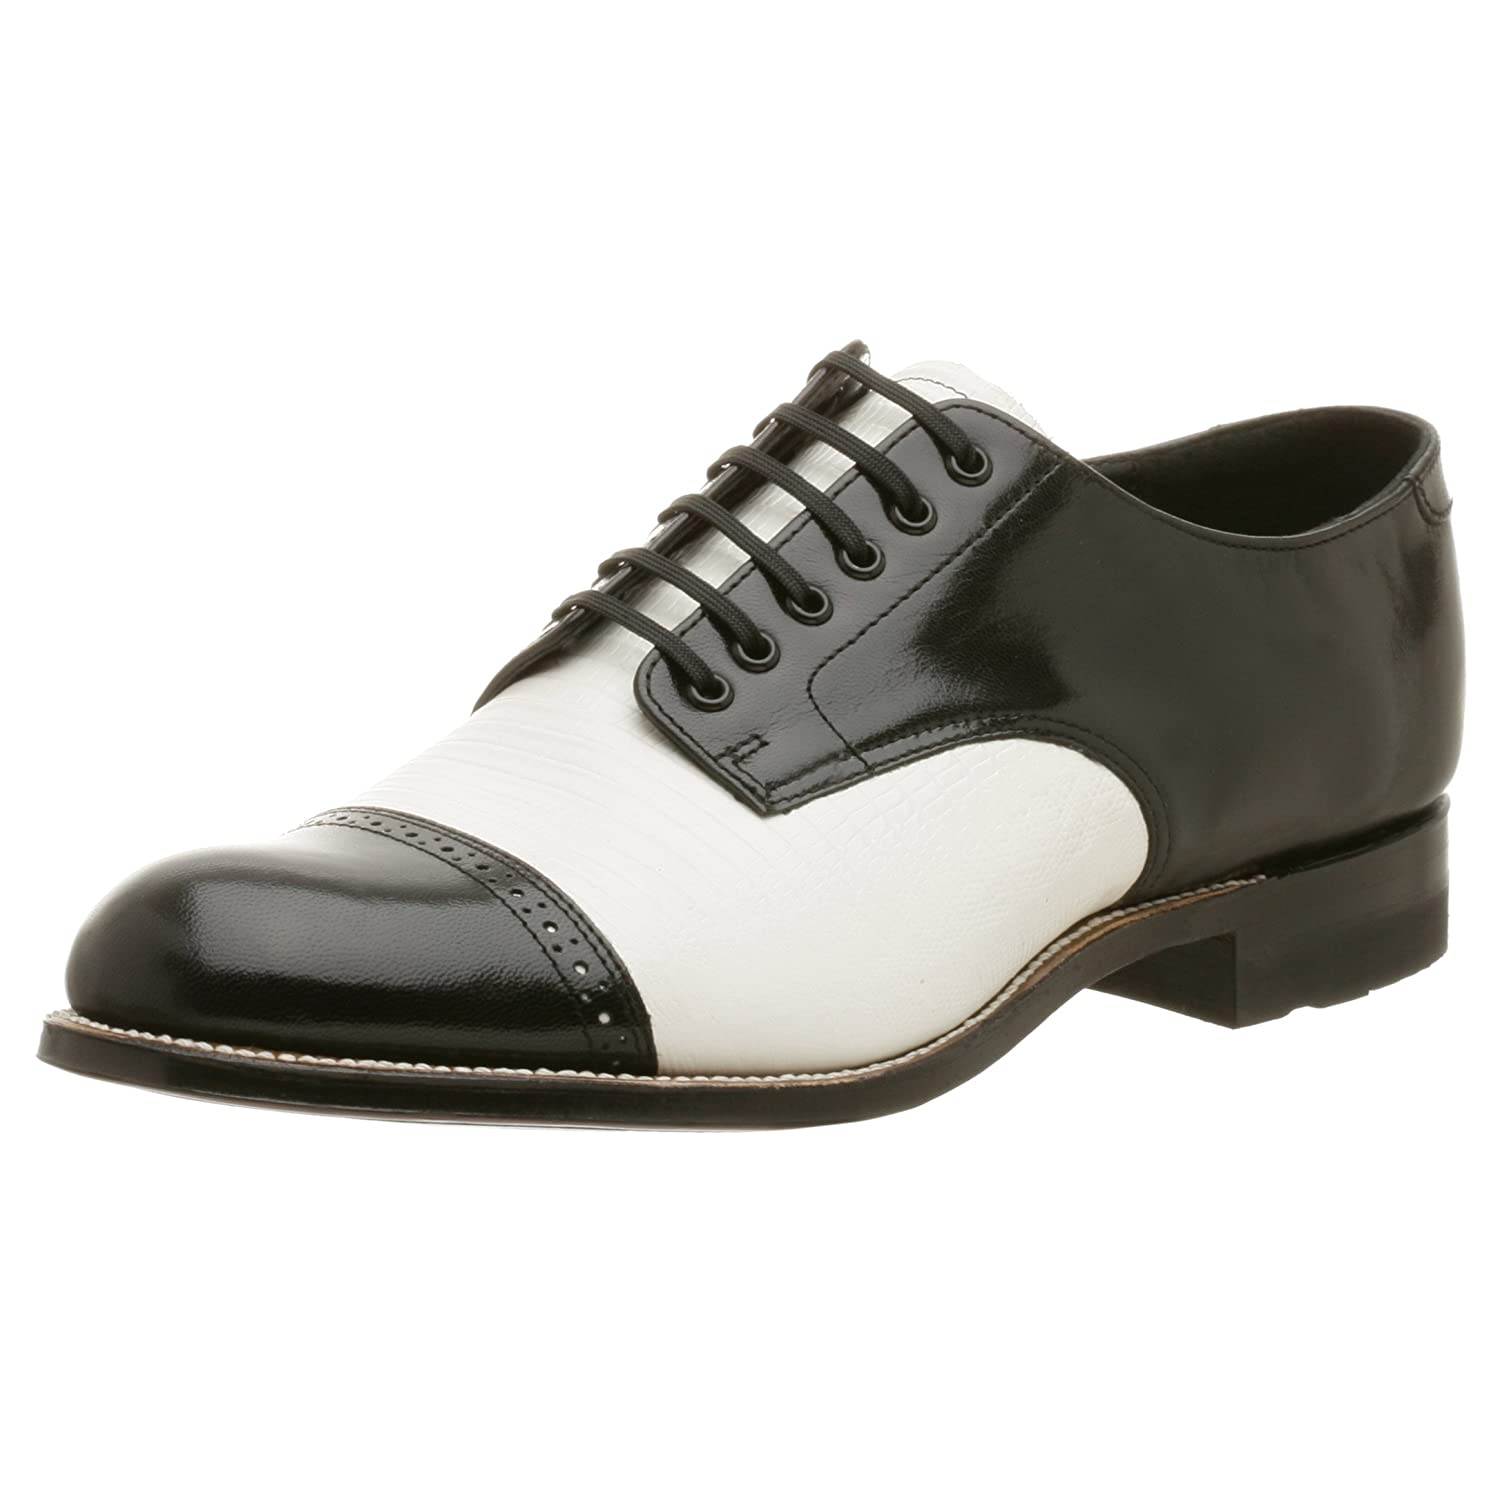 Men's 1950s Shoes Styles- Classics to Saddles to Rockabilly Stacy Adams Mens Madison Lizard Print Oxford $129.95 AT vintagedancer.com